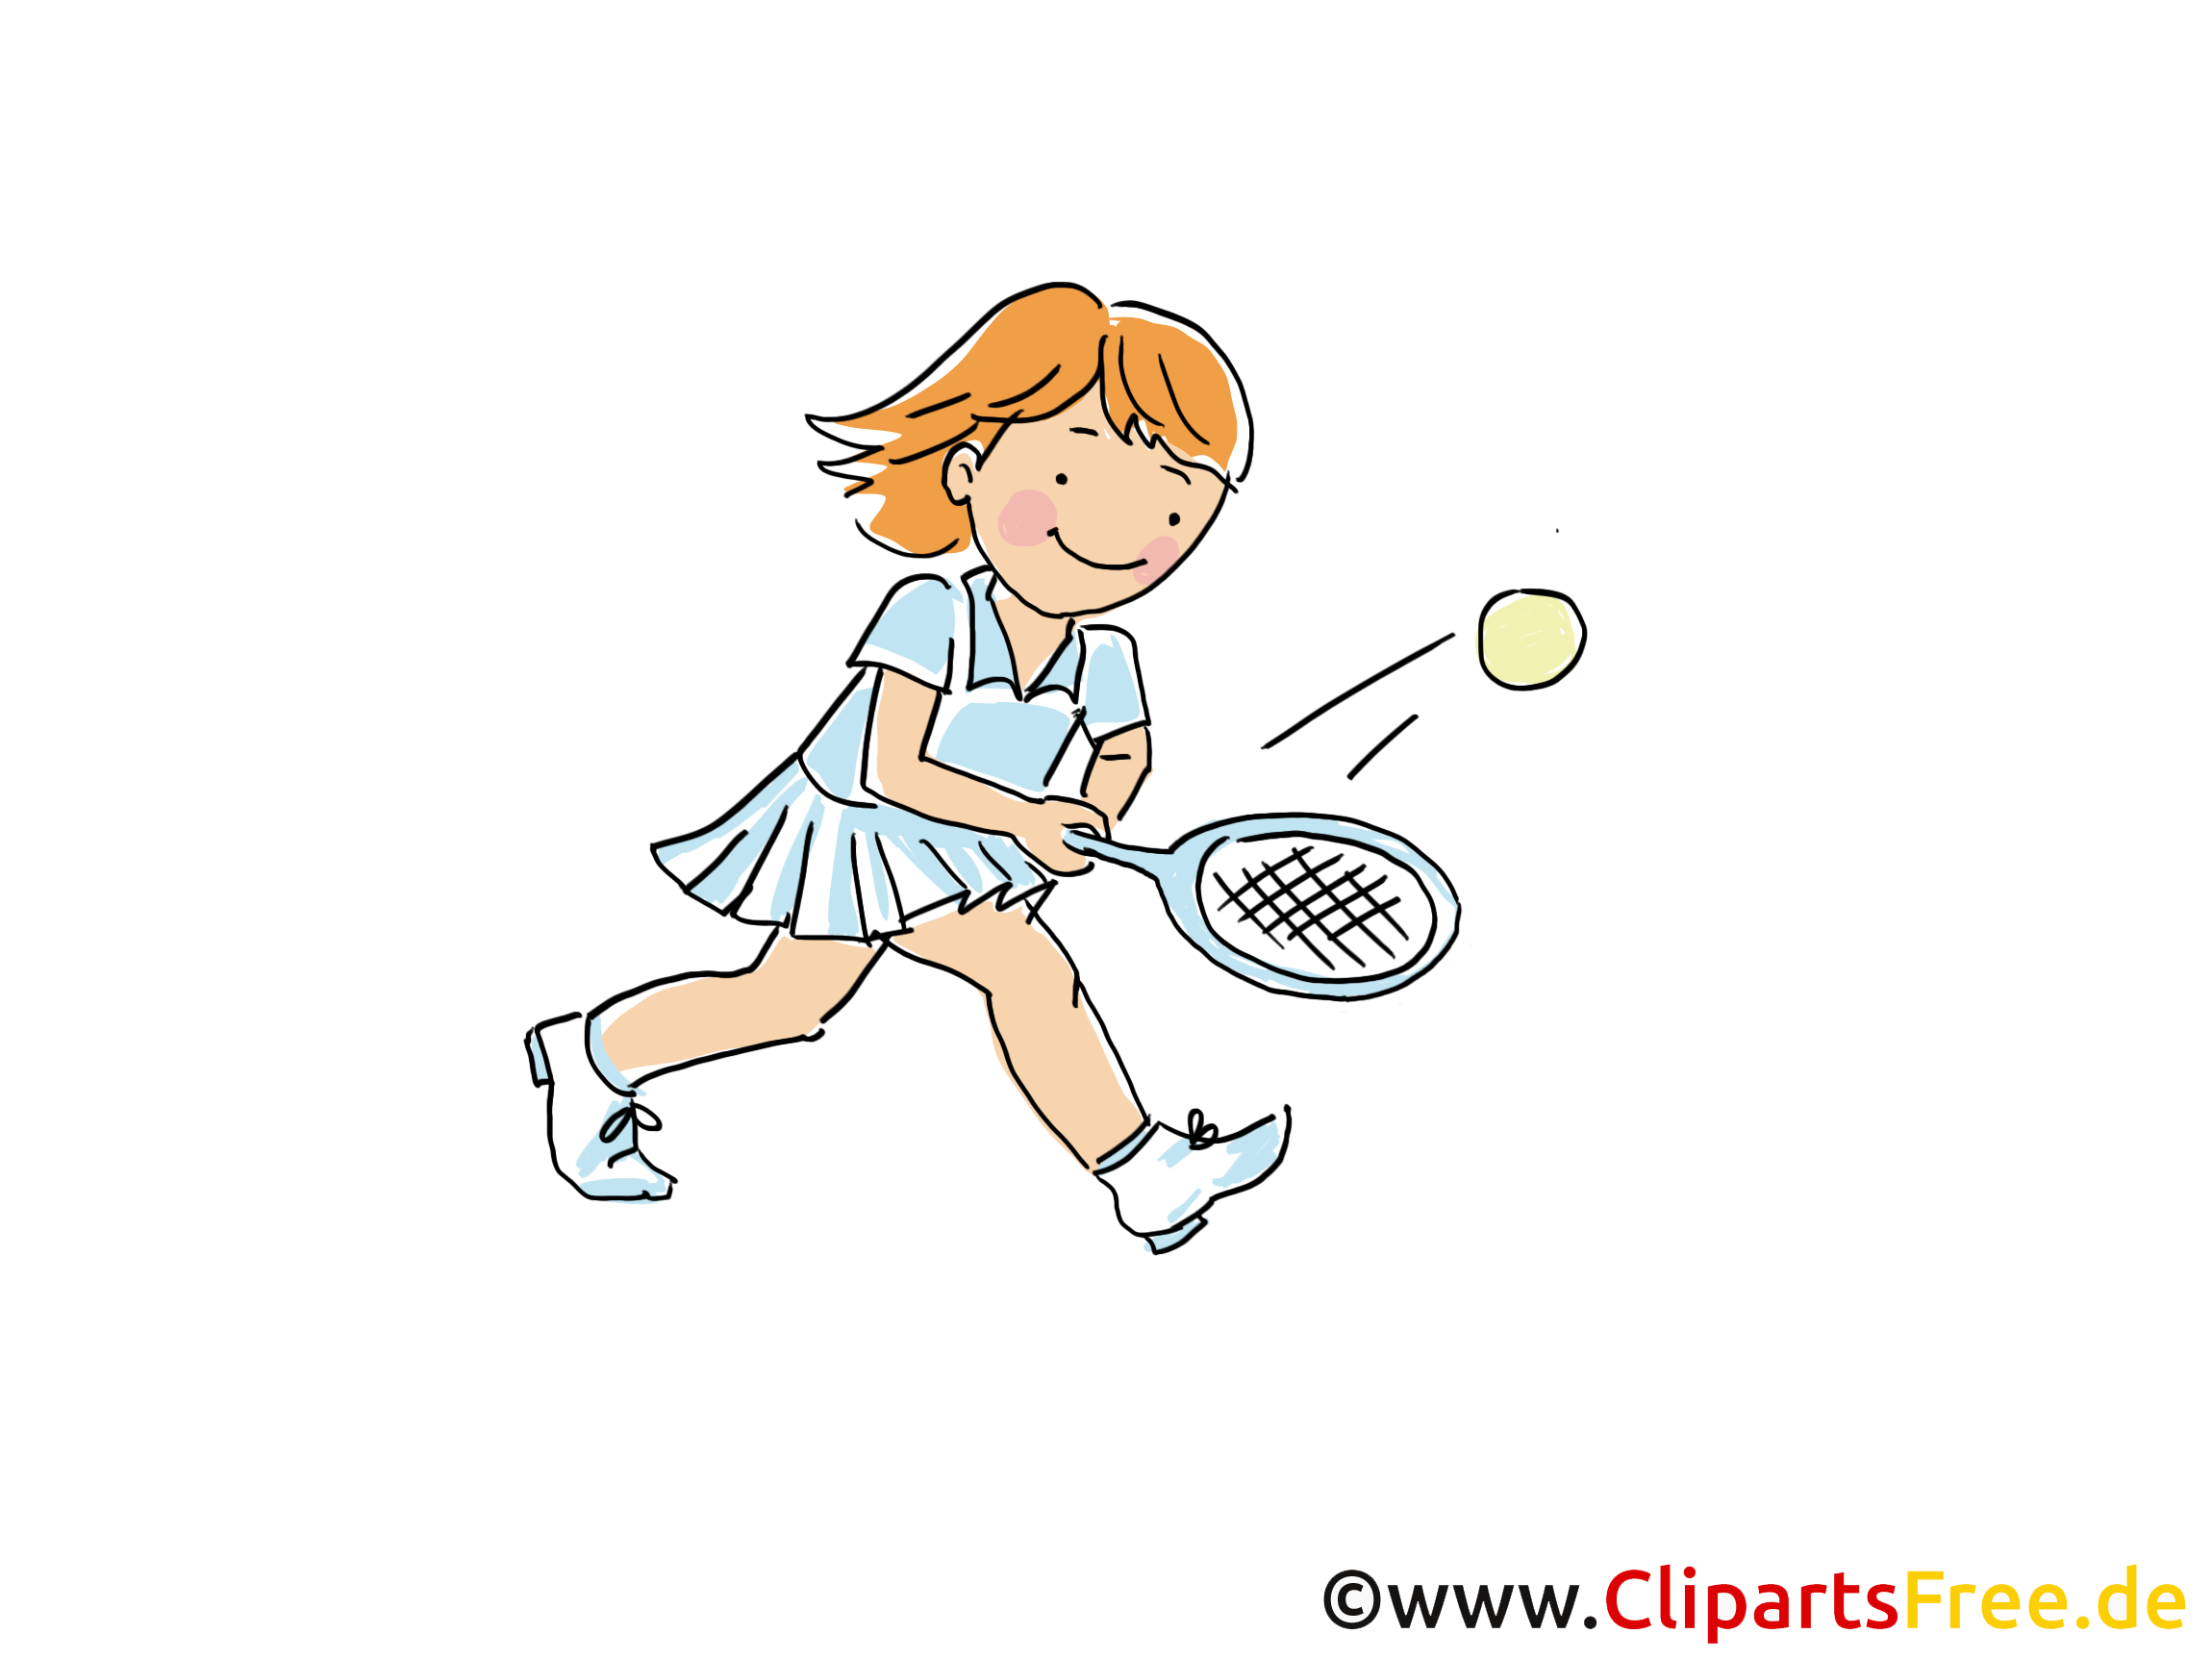 Tennis Training Bild, Sport Cliparts, Comic, Cartoon, Image gratis